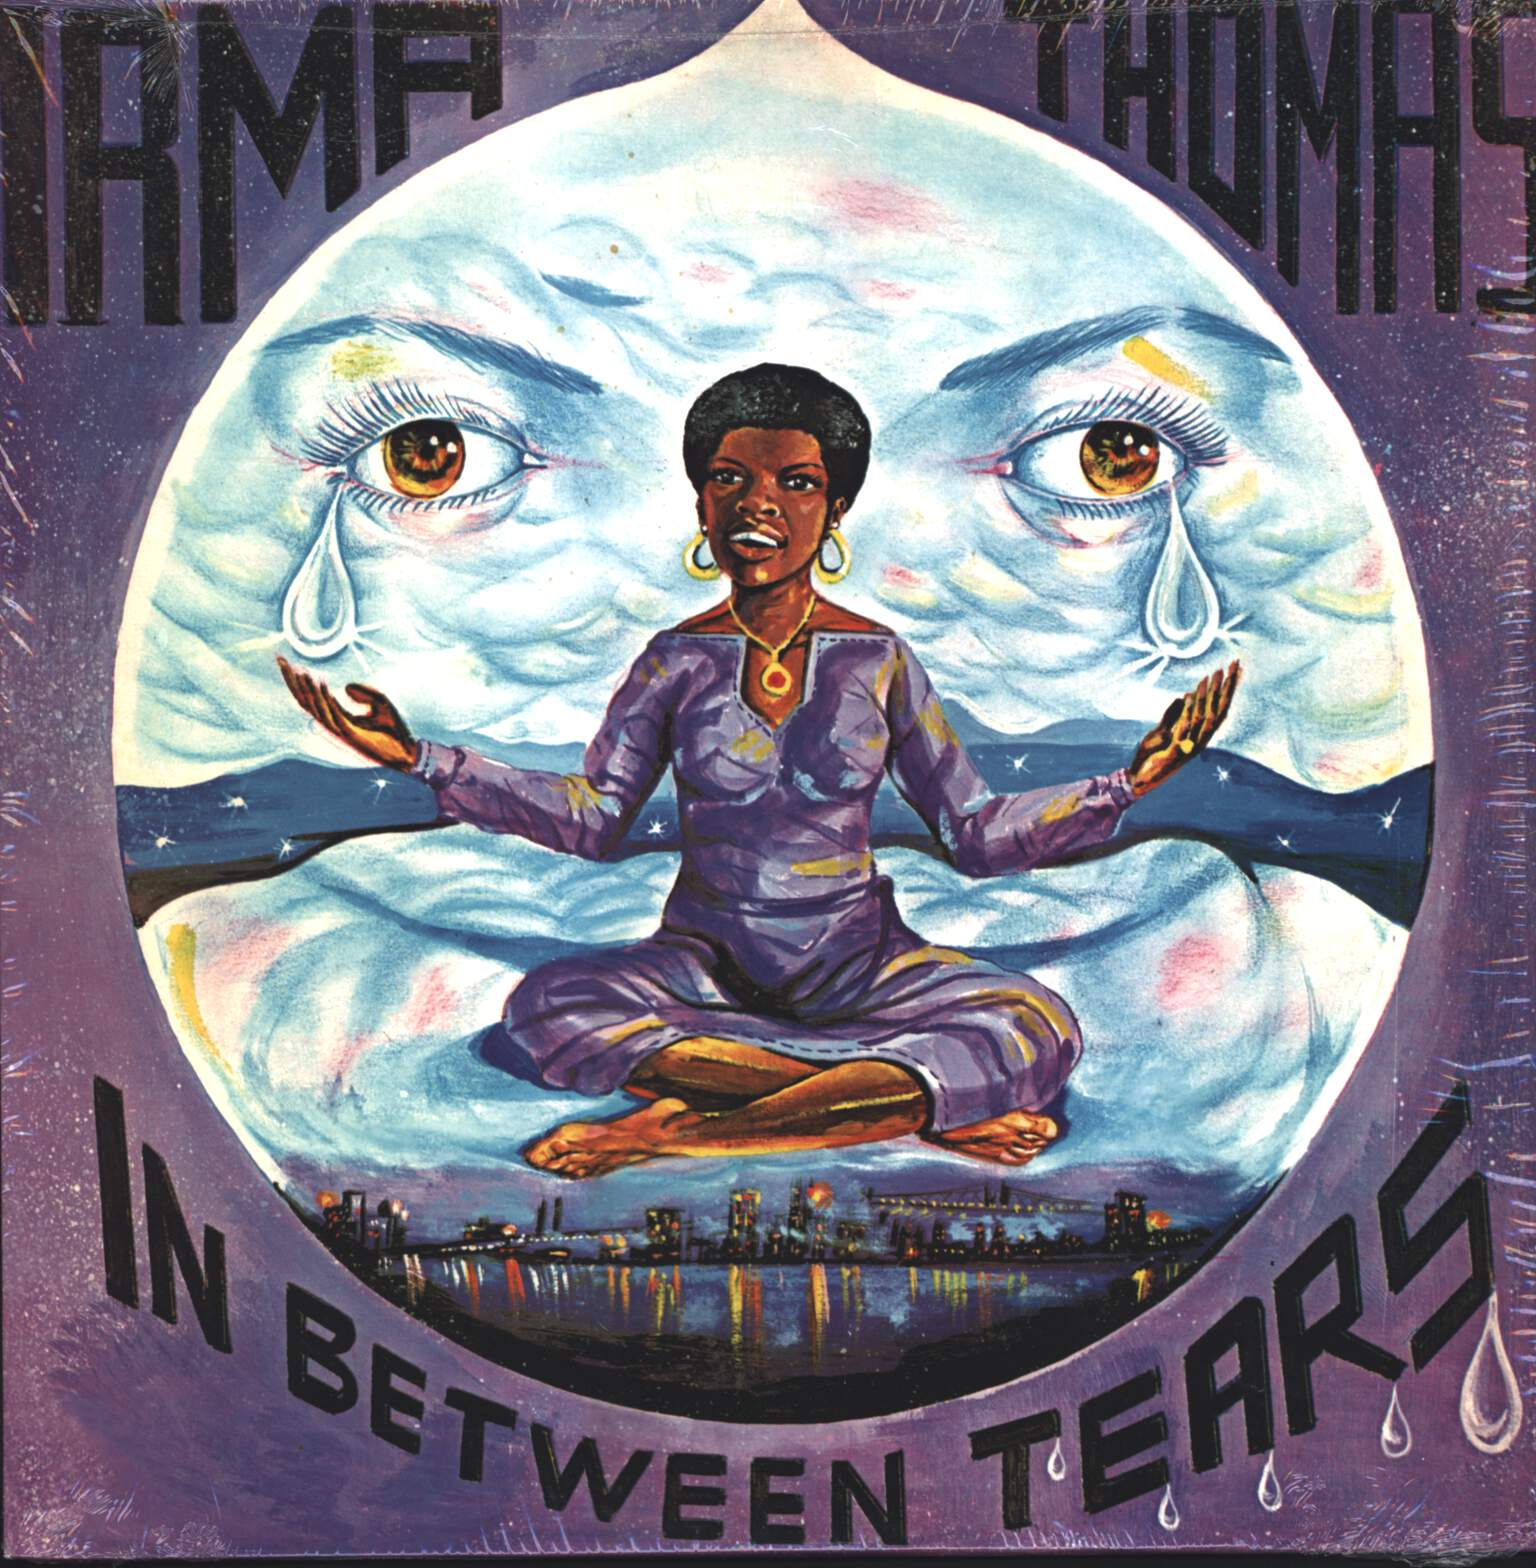 Irma Thomas: In Between Tears, LP (Vinyl)